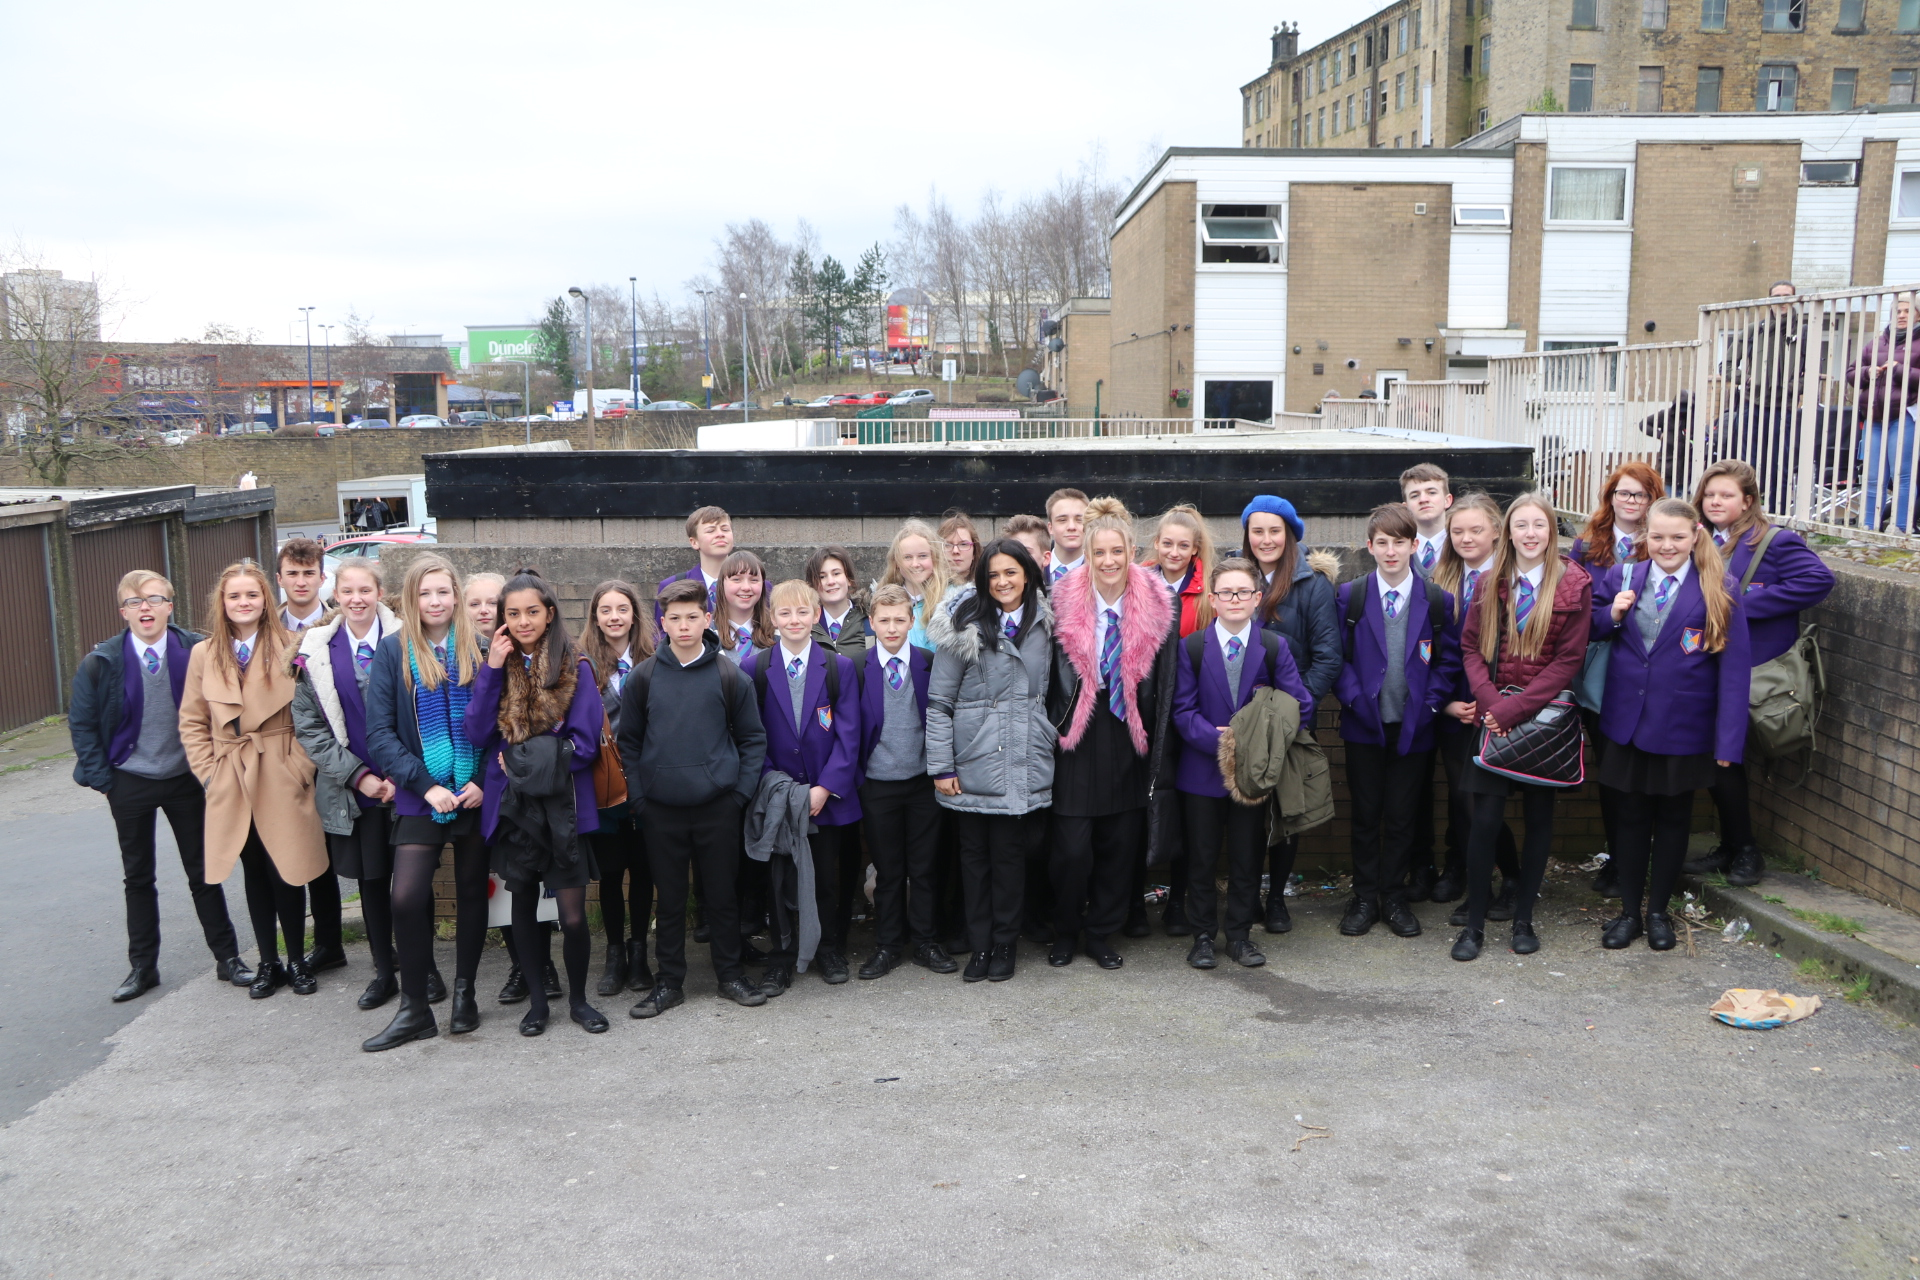 Ryburn students on set with stars of the show Amy-Leigh Hickman and Poppy Lee Friar, who play Naz and Missy.